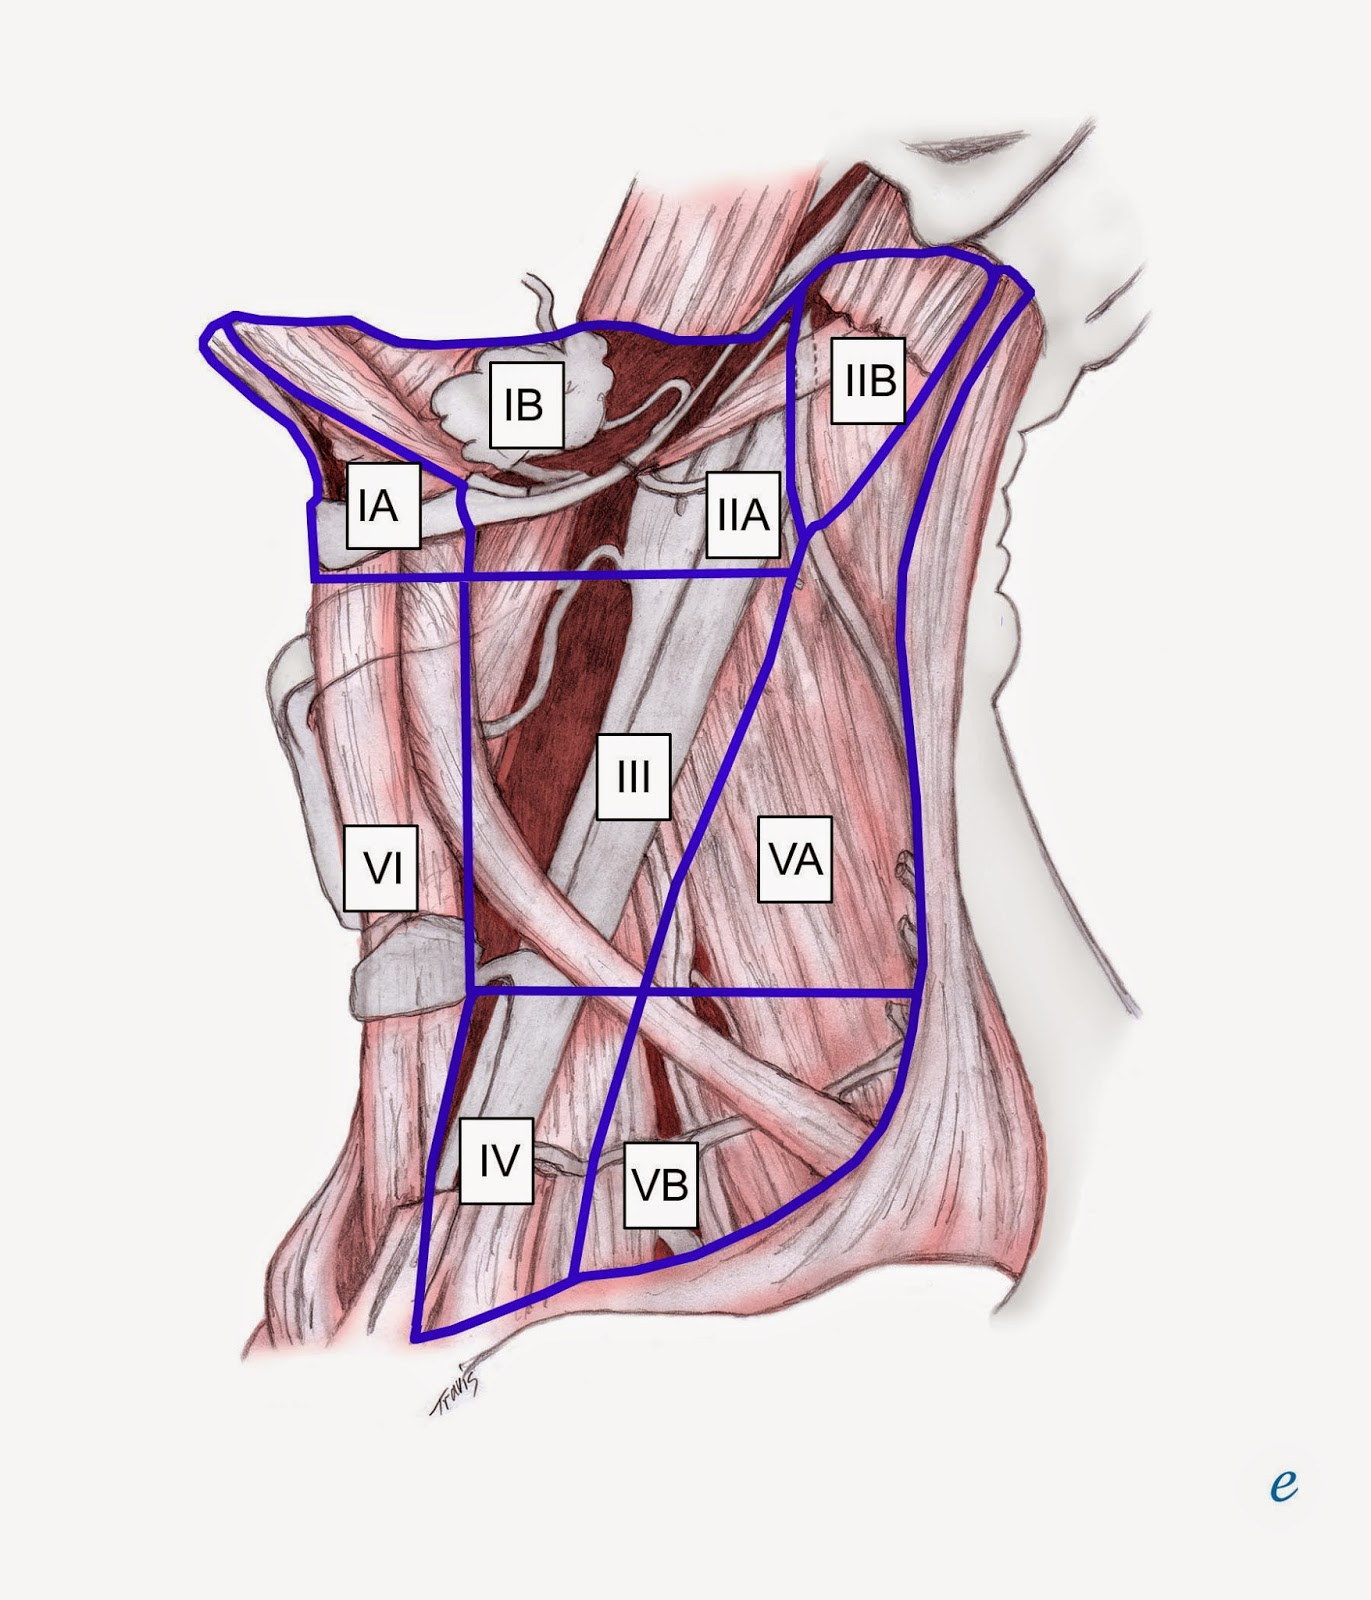 The posterior border of level ii is the posterior border of the sternocleidomastoid muscle